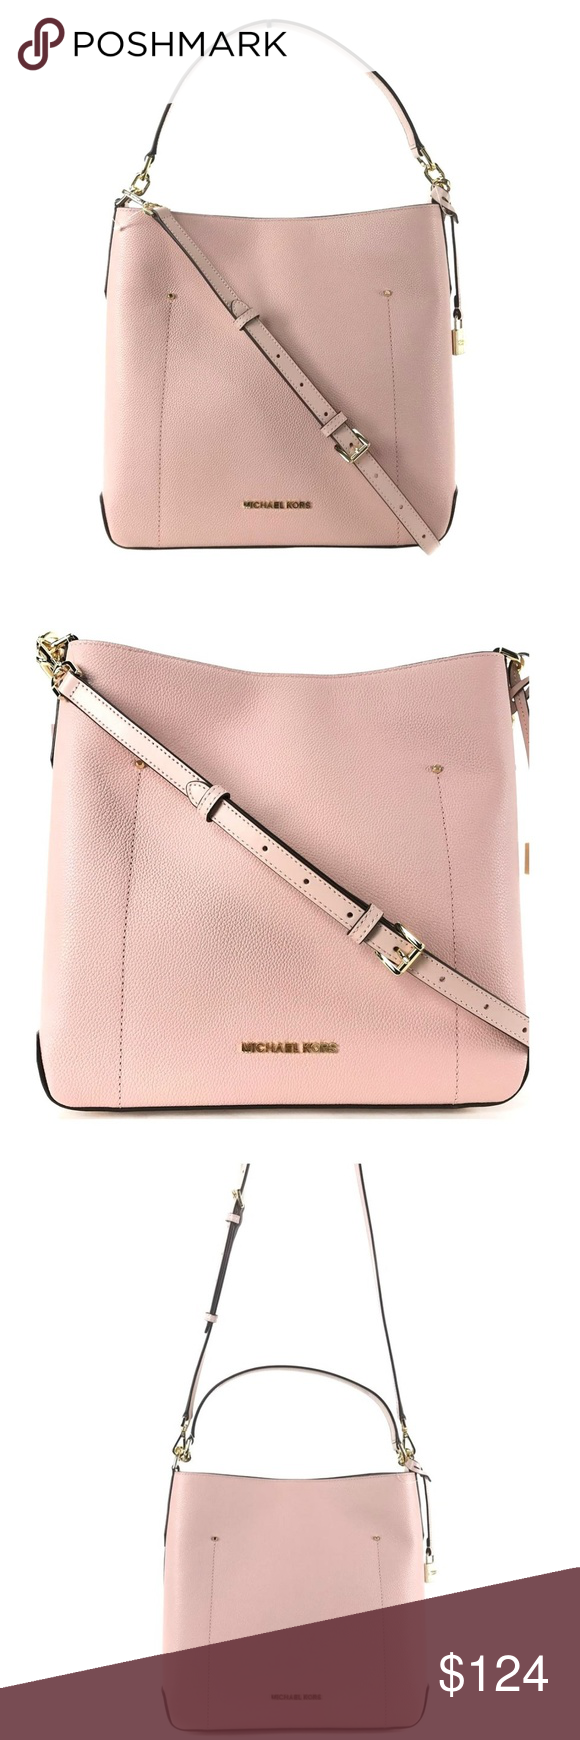 d4e37d740c6c Pastel Pink · Michael Kors Hayes LG Bucket Leather Shoulder Bag    100%  GUARANTEED AUTHENTIC OR